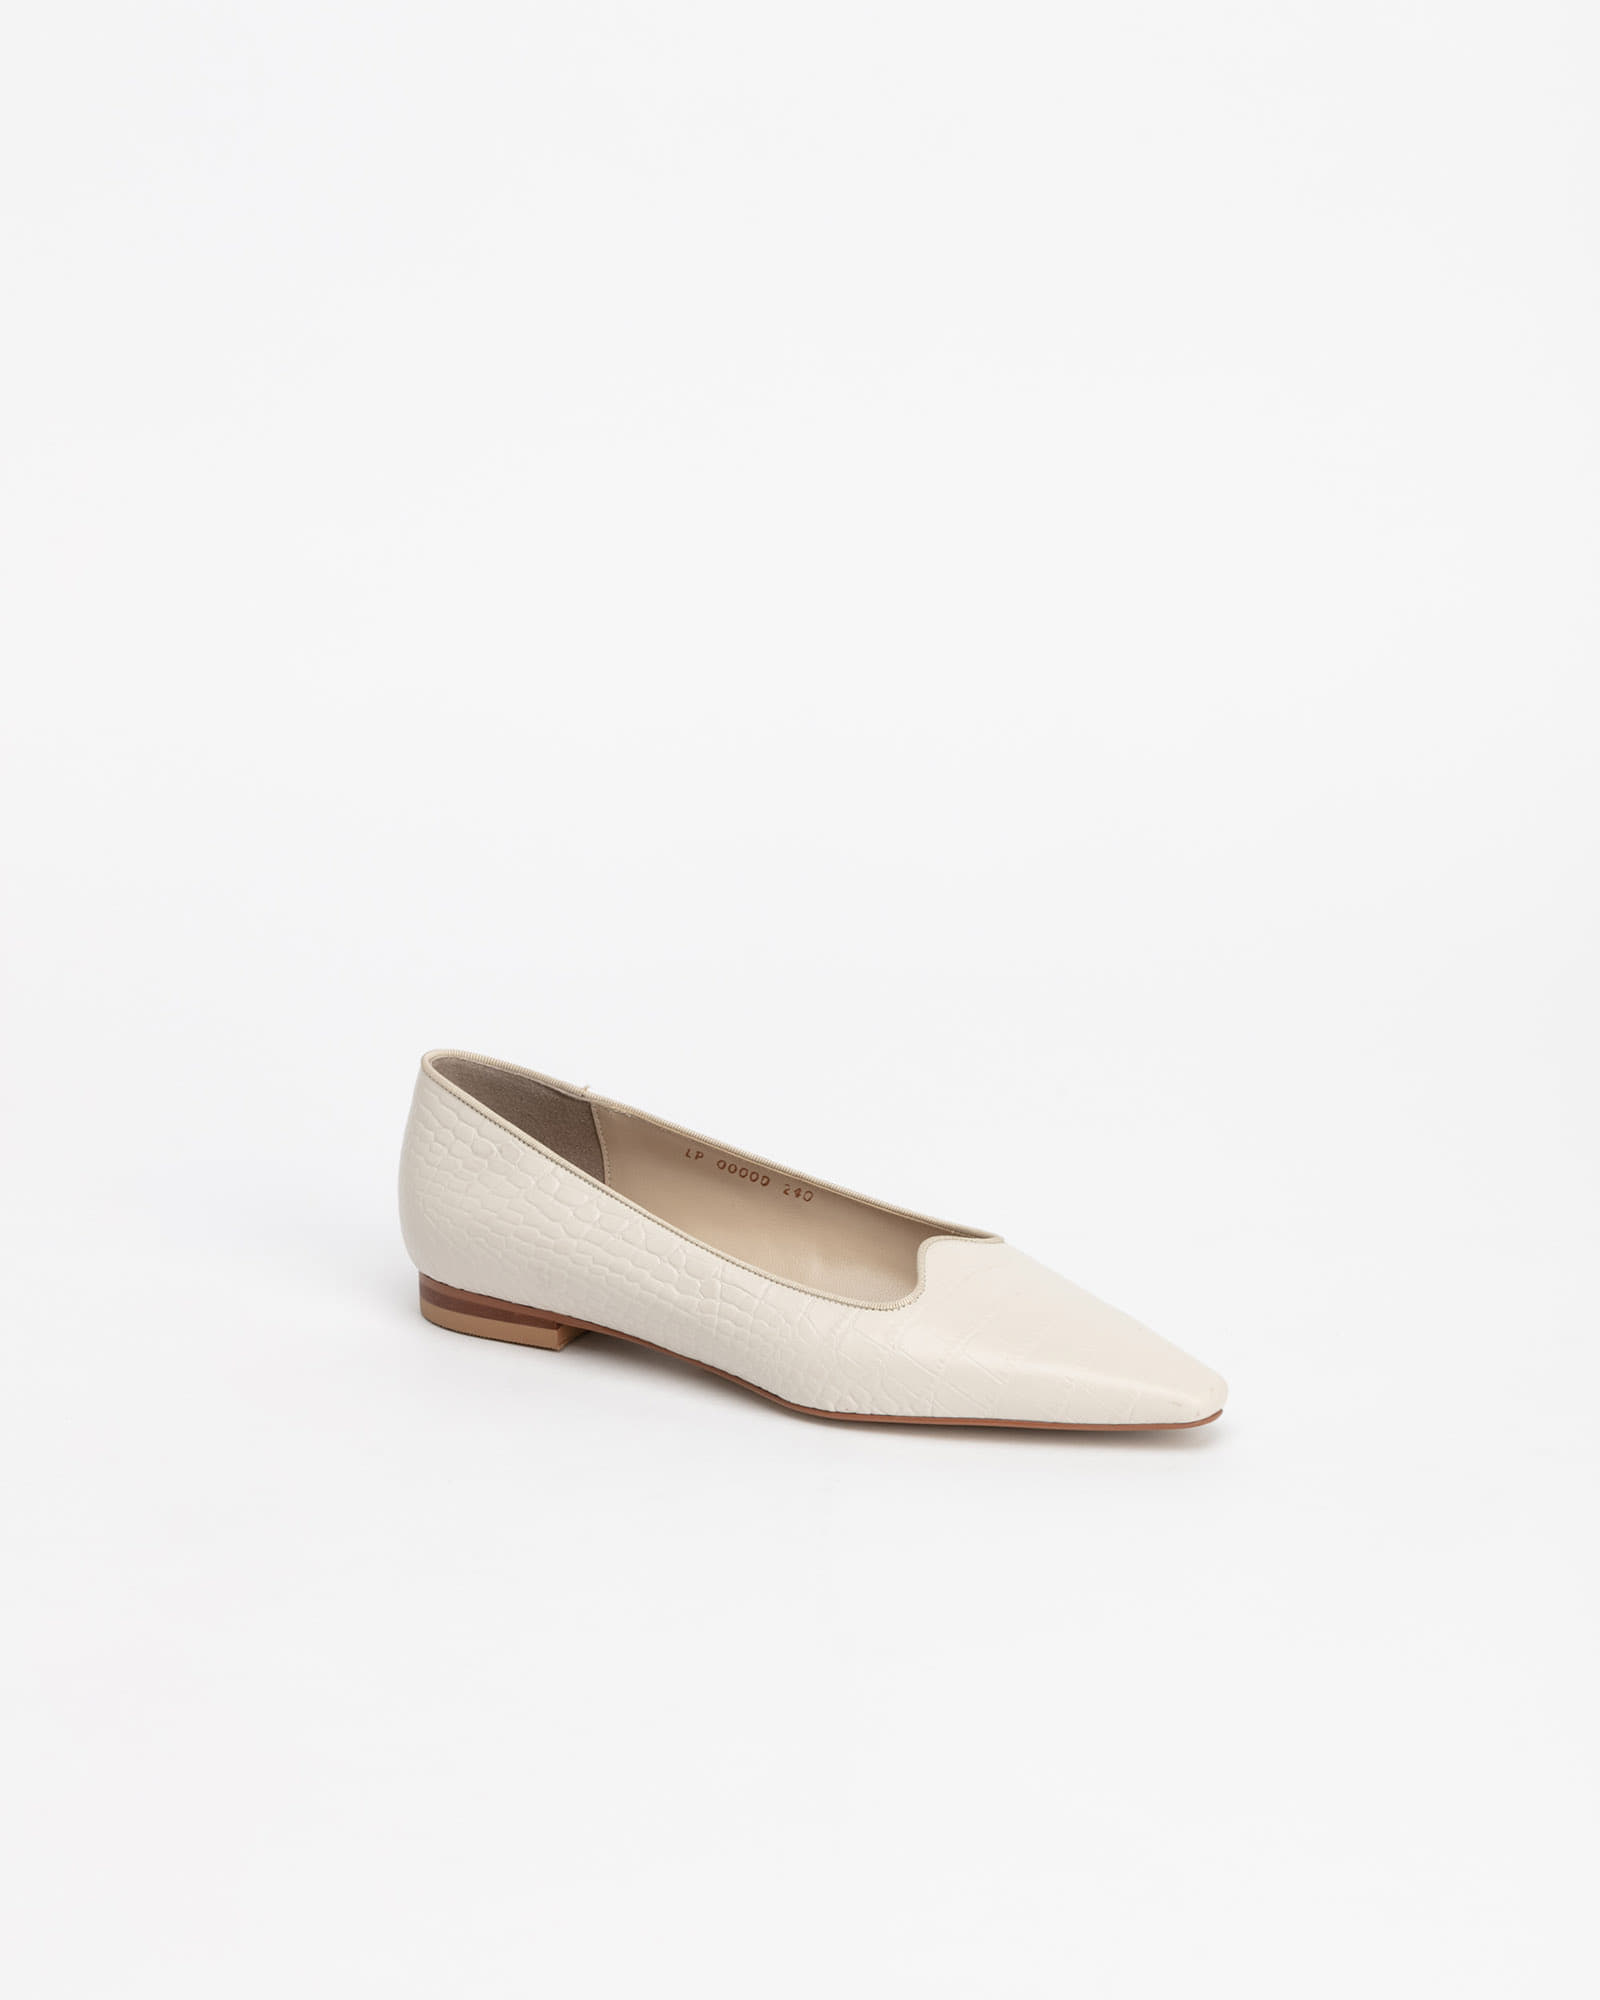 Tanoa Flat Shoes in Ivory Croco Prints